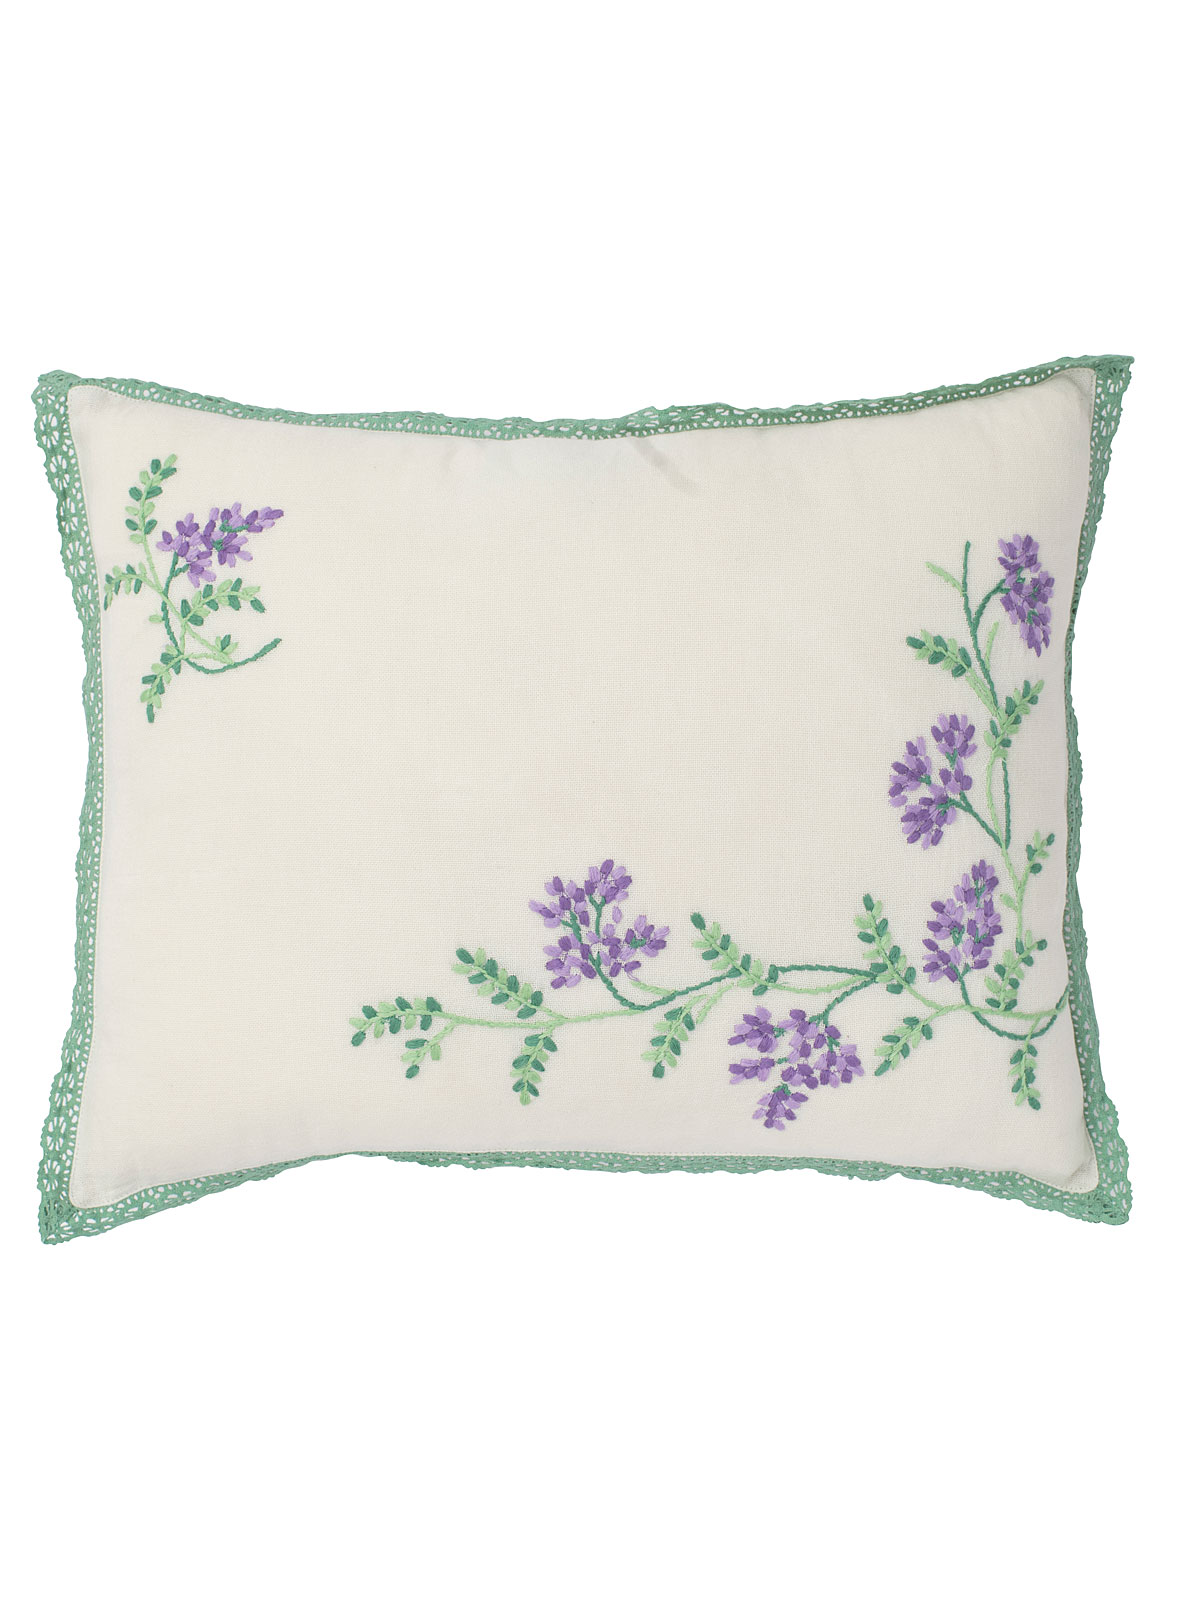 Lavender Blossom Embroidered Cushion